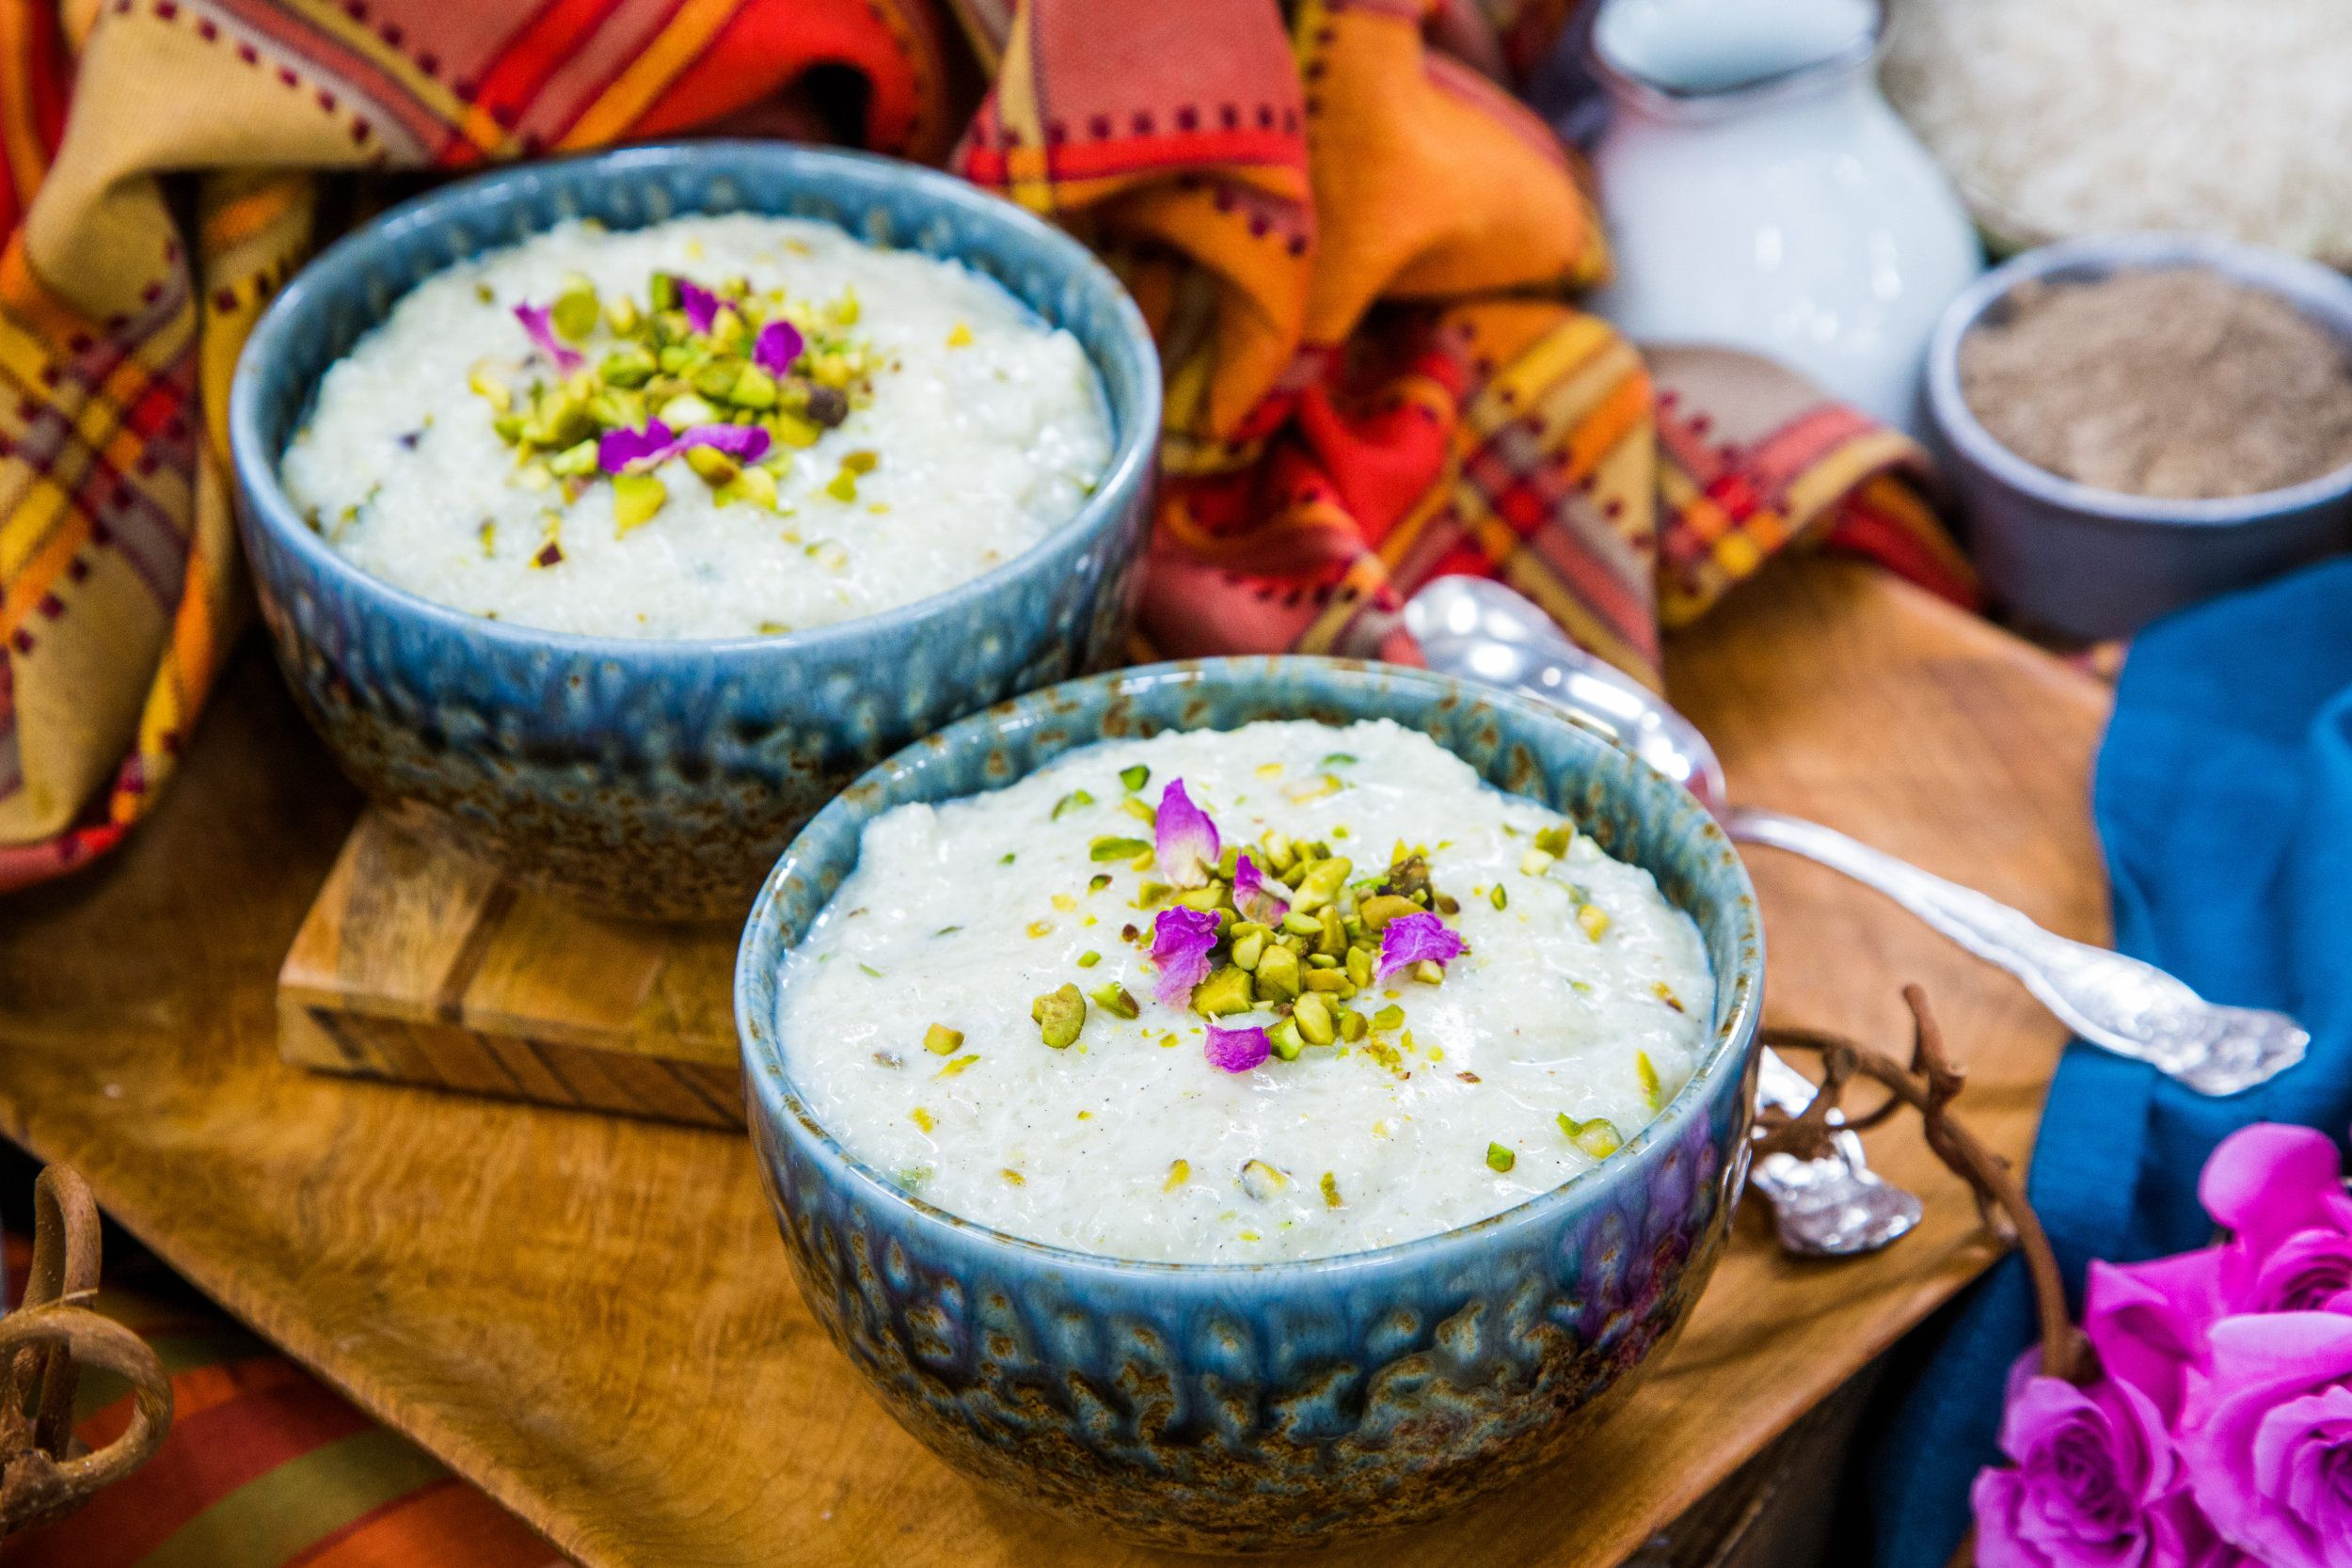 Aarti Sequeira S Indian Rice Pudding Recipe Indian Rice